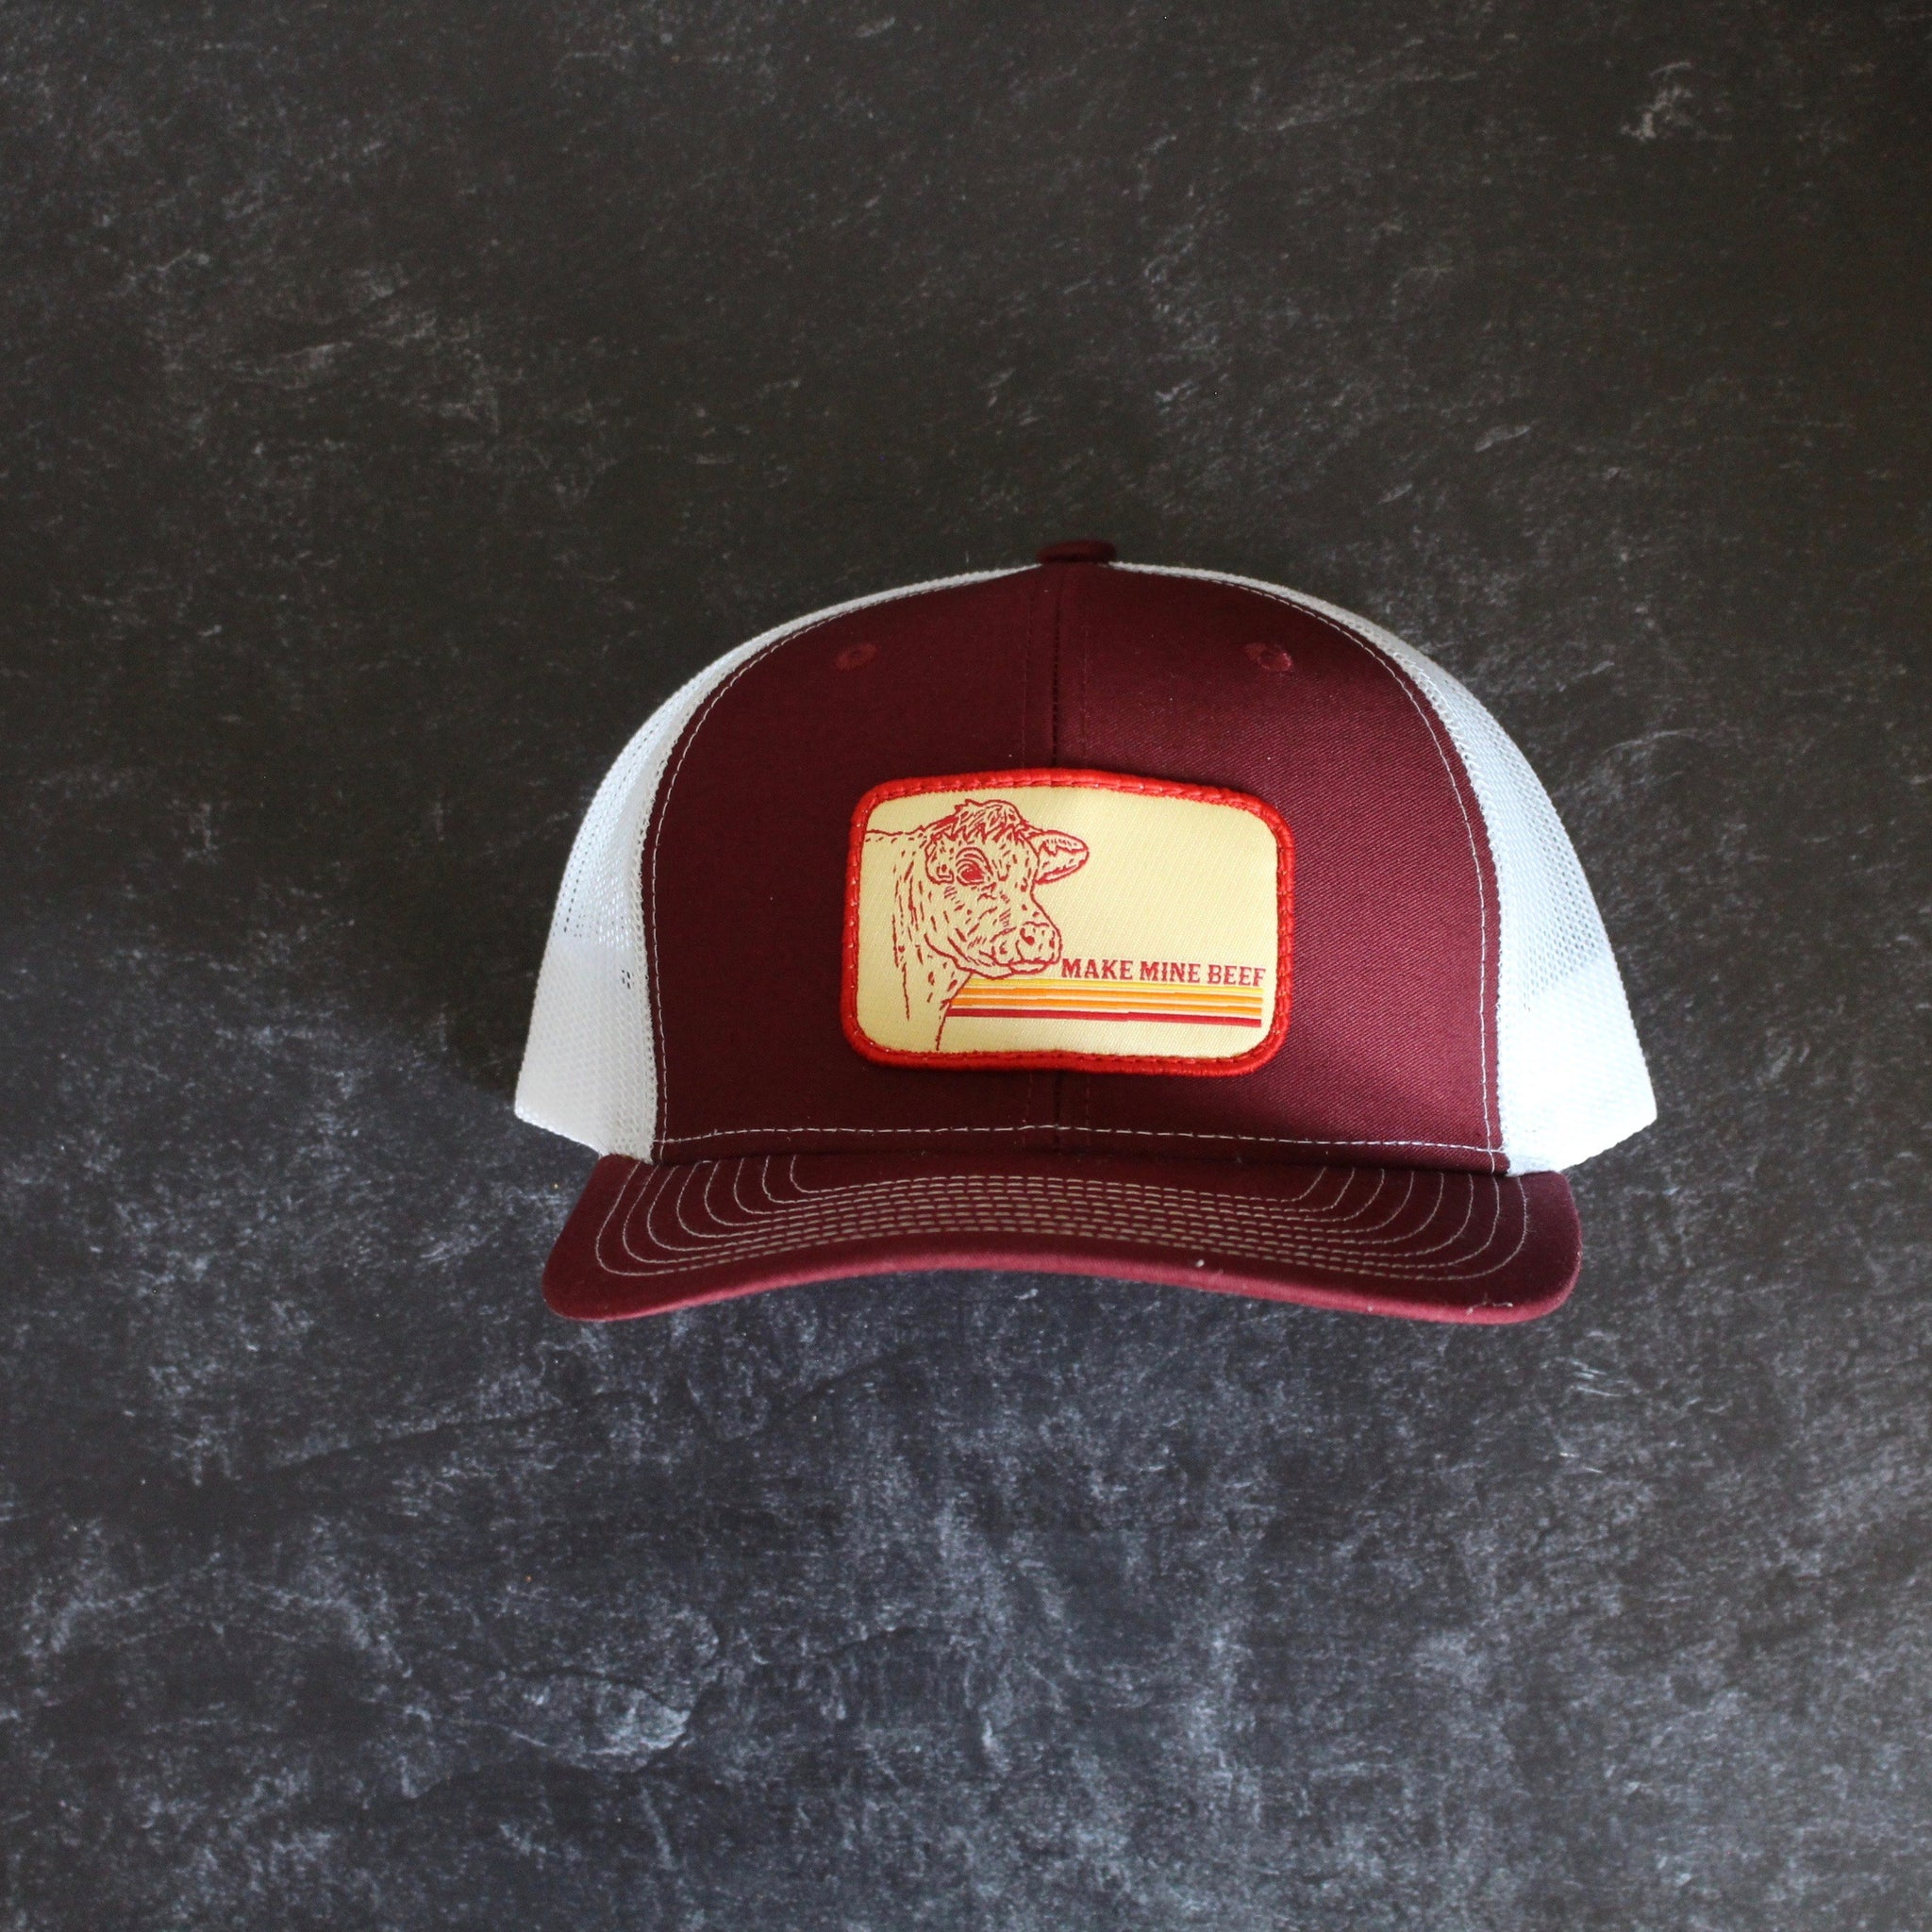 Retro Patch Make Mine Beef Hats - The Beef Boutique